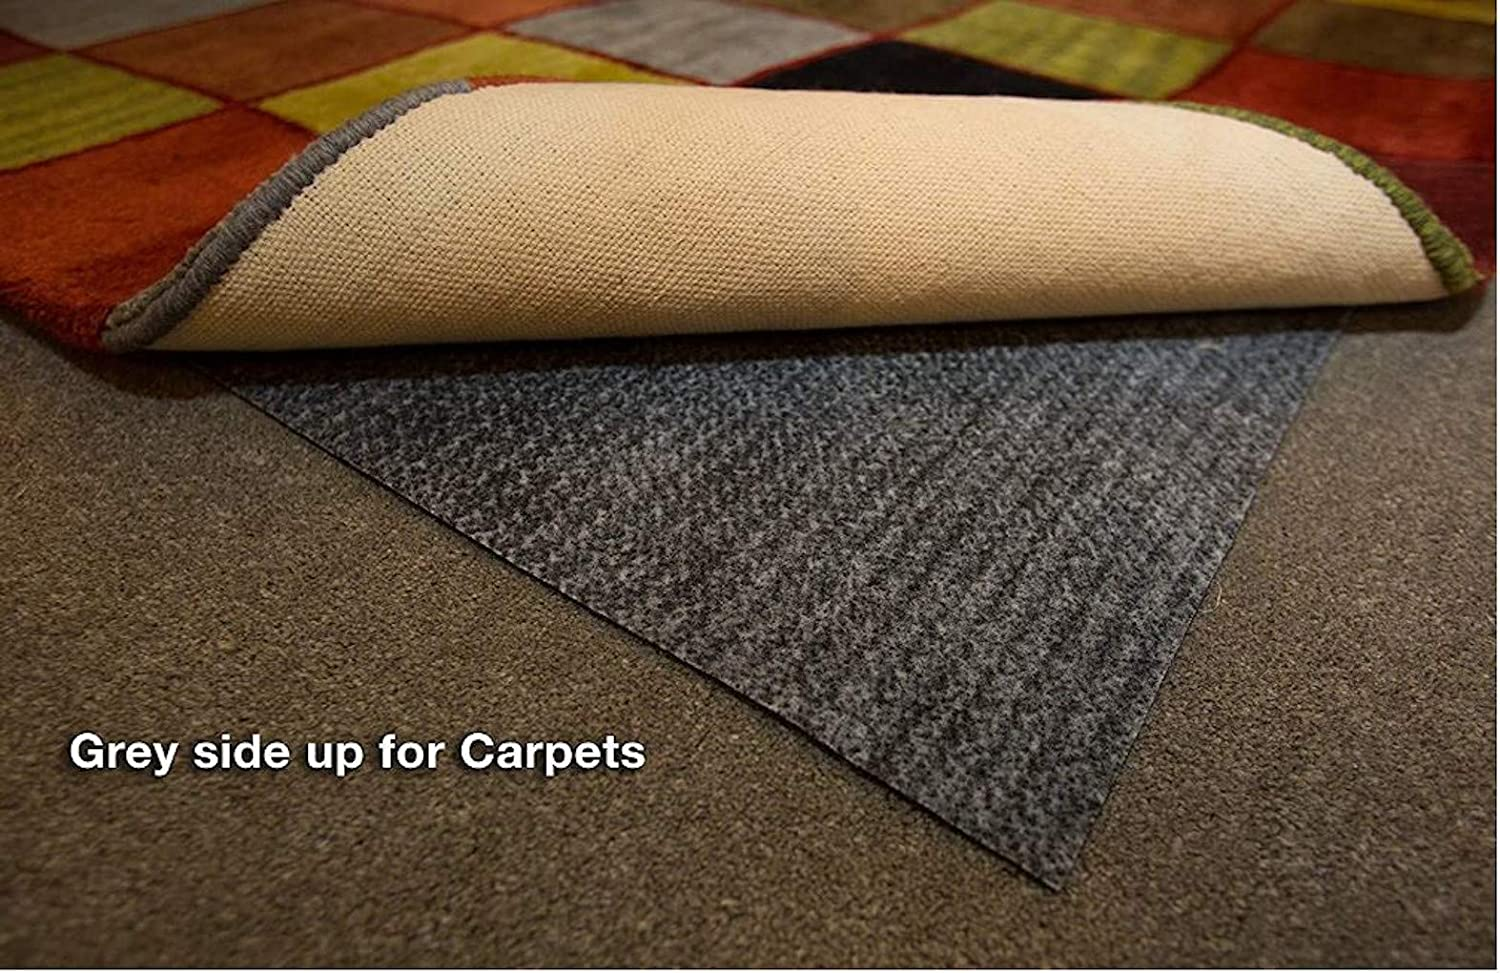 1//4 Thick Nonslip Rug Pad Safe for All Floors and Carpet Hold-a-Rug Plush 2 x 4 Nonskid